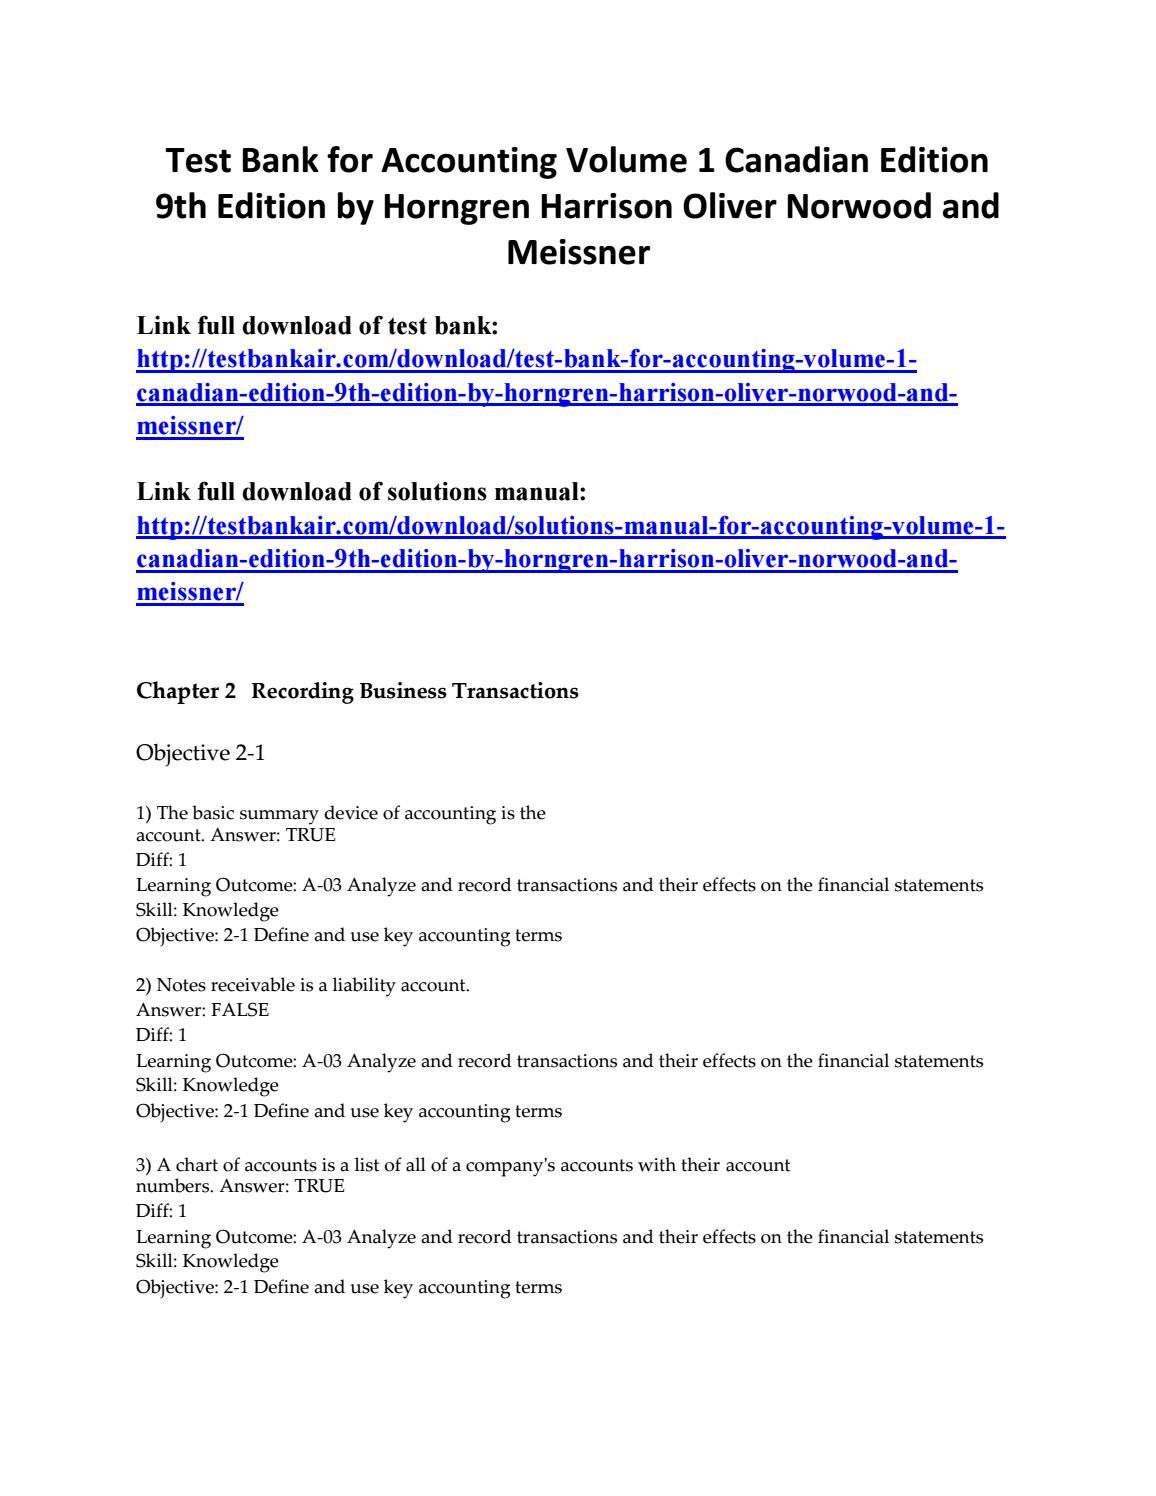 Test bank for accounting volume 1 canadian edition 9th edition by horngren  harrison oliver norwood a